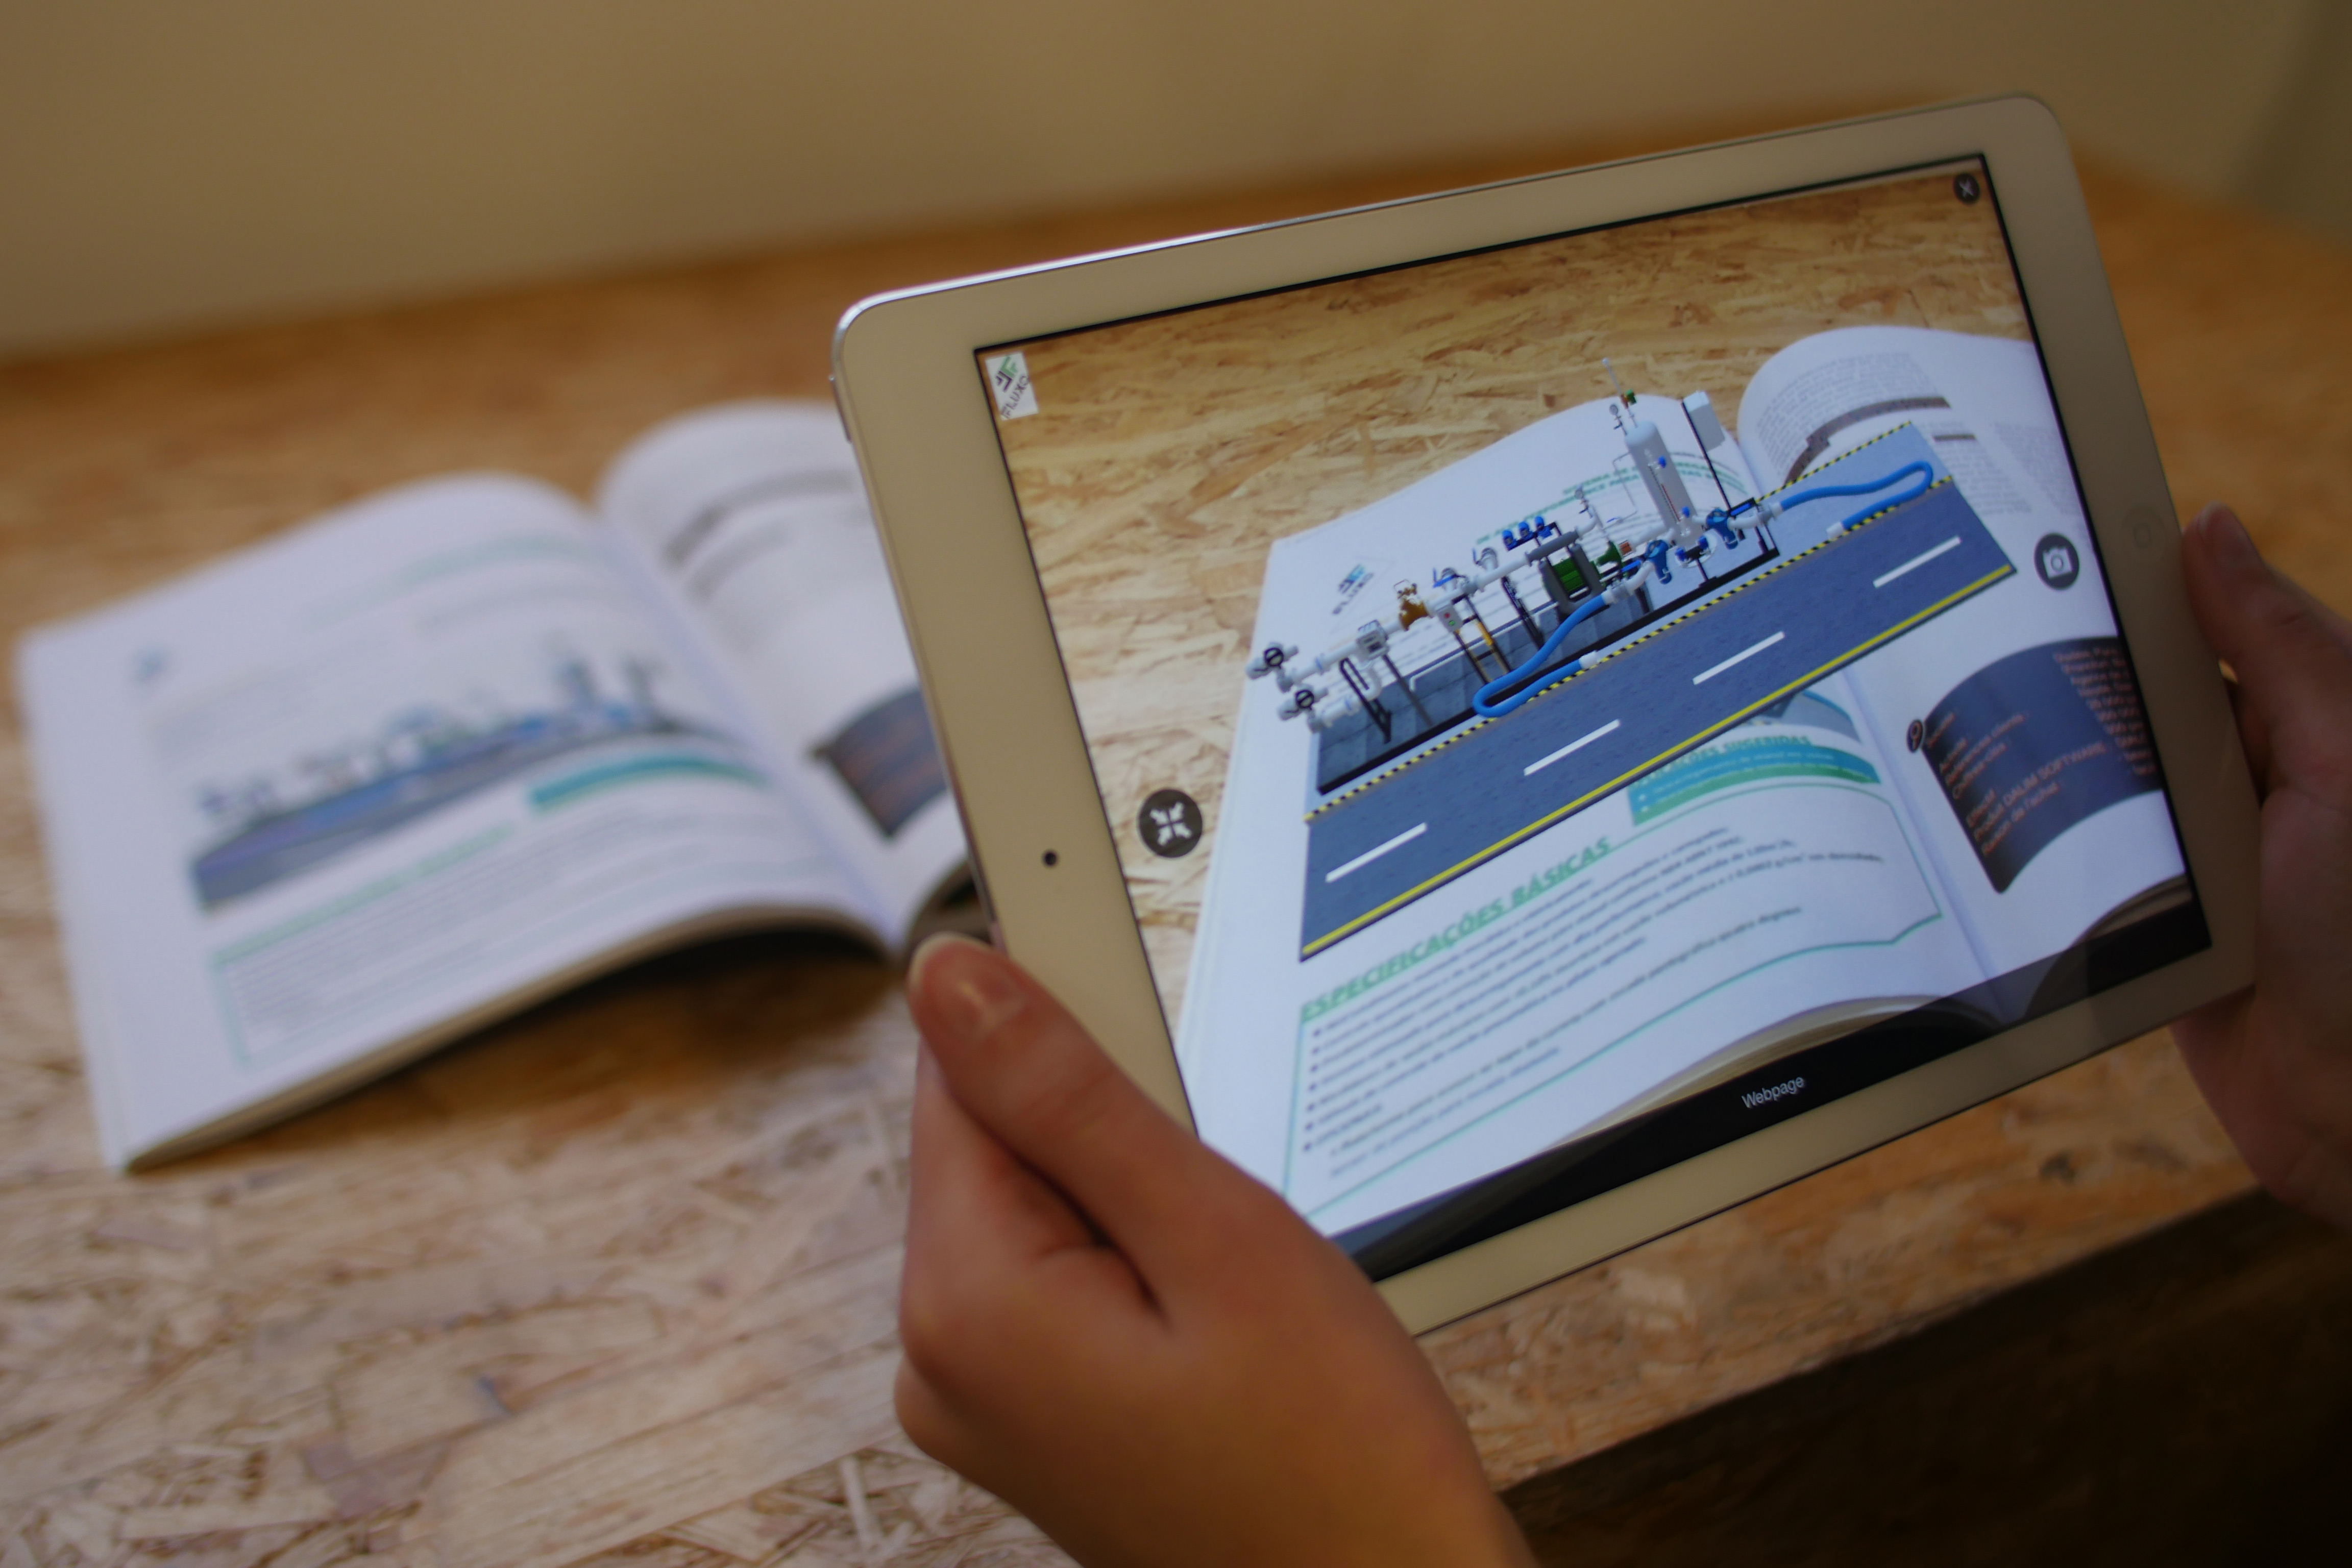 Augmented Reality Based Learning In School Classrooms